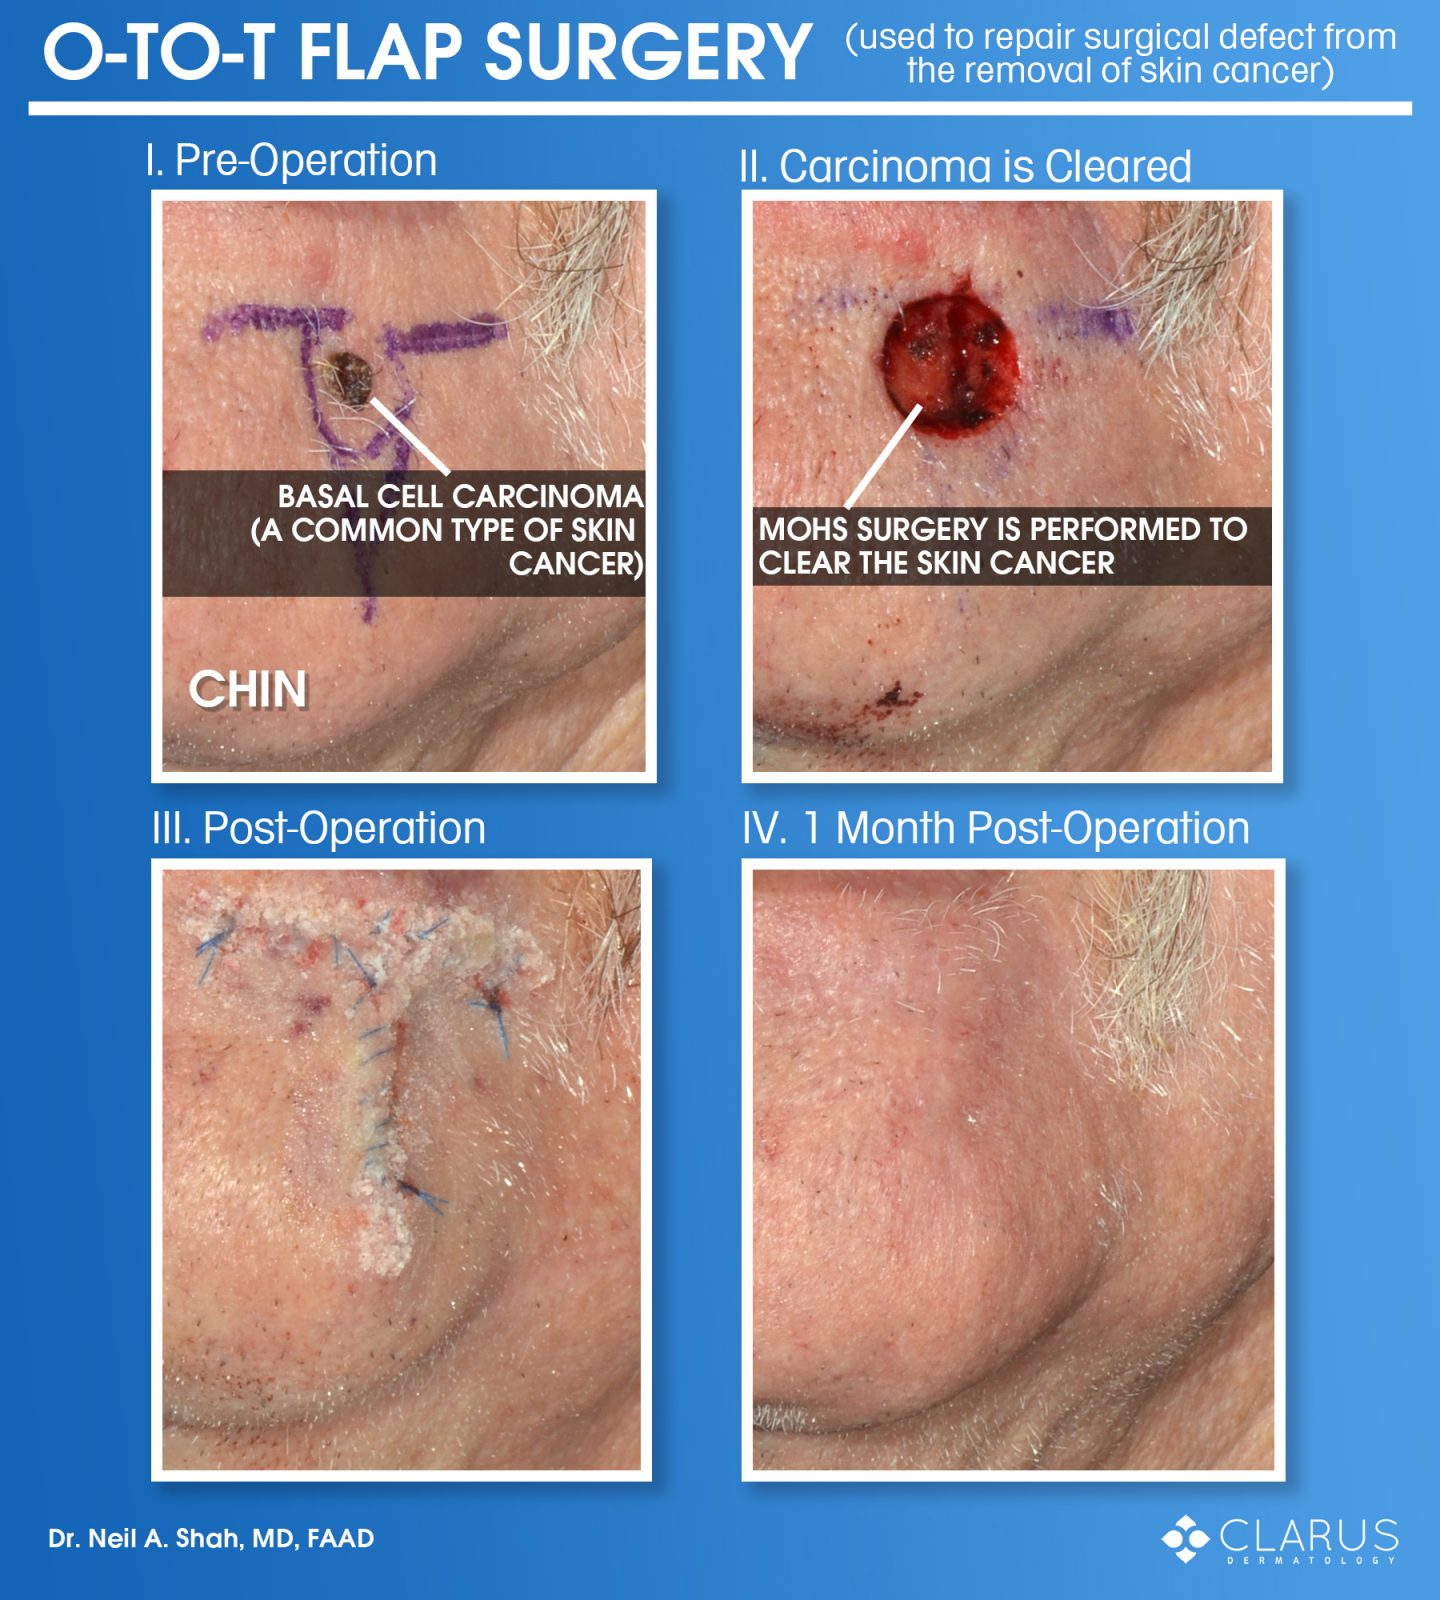 One of the reasons that we have so many satisfied patients at Clarus Dermatology is because of our quality aesthetic outcomes from surgical procedures. The images here are from a patient that had a basal cell carcinoma, a common type of skin cancer, on his chin. Even though the scar is nearly undetectable a month post-operation, there is a lot of unseen effort to achieve that outcome.